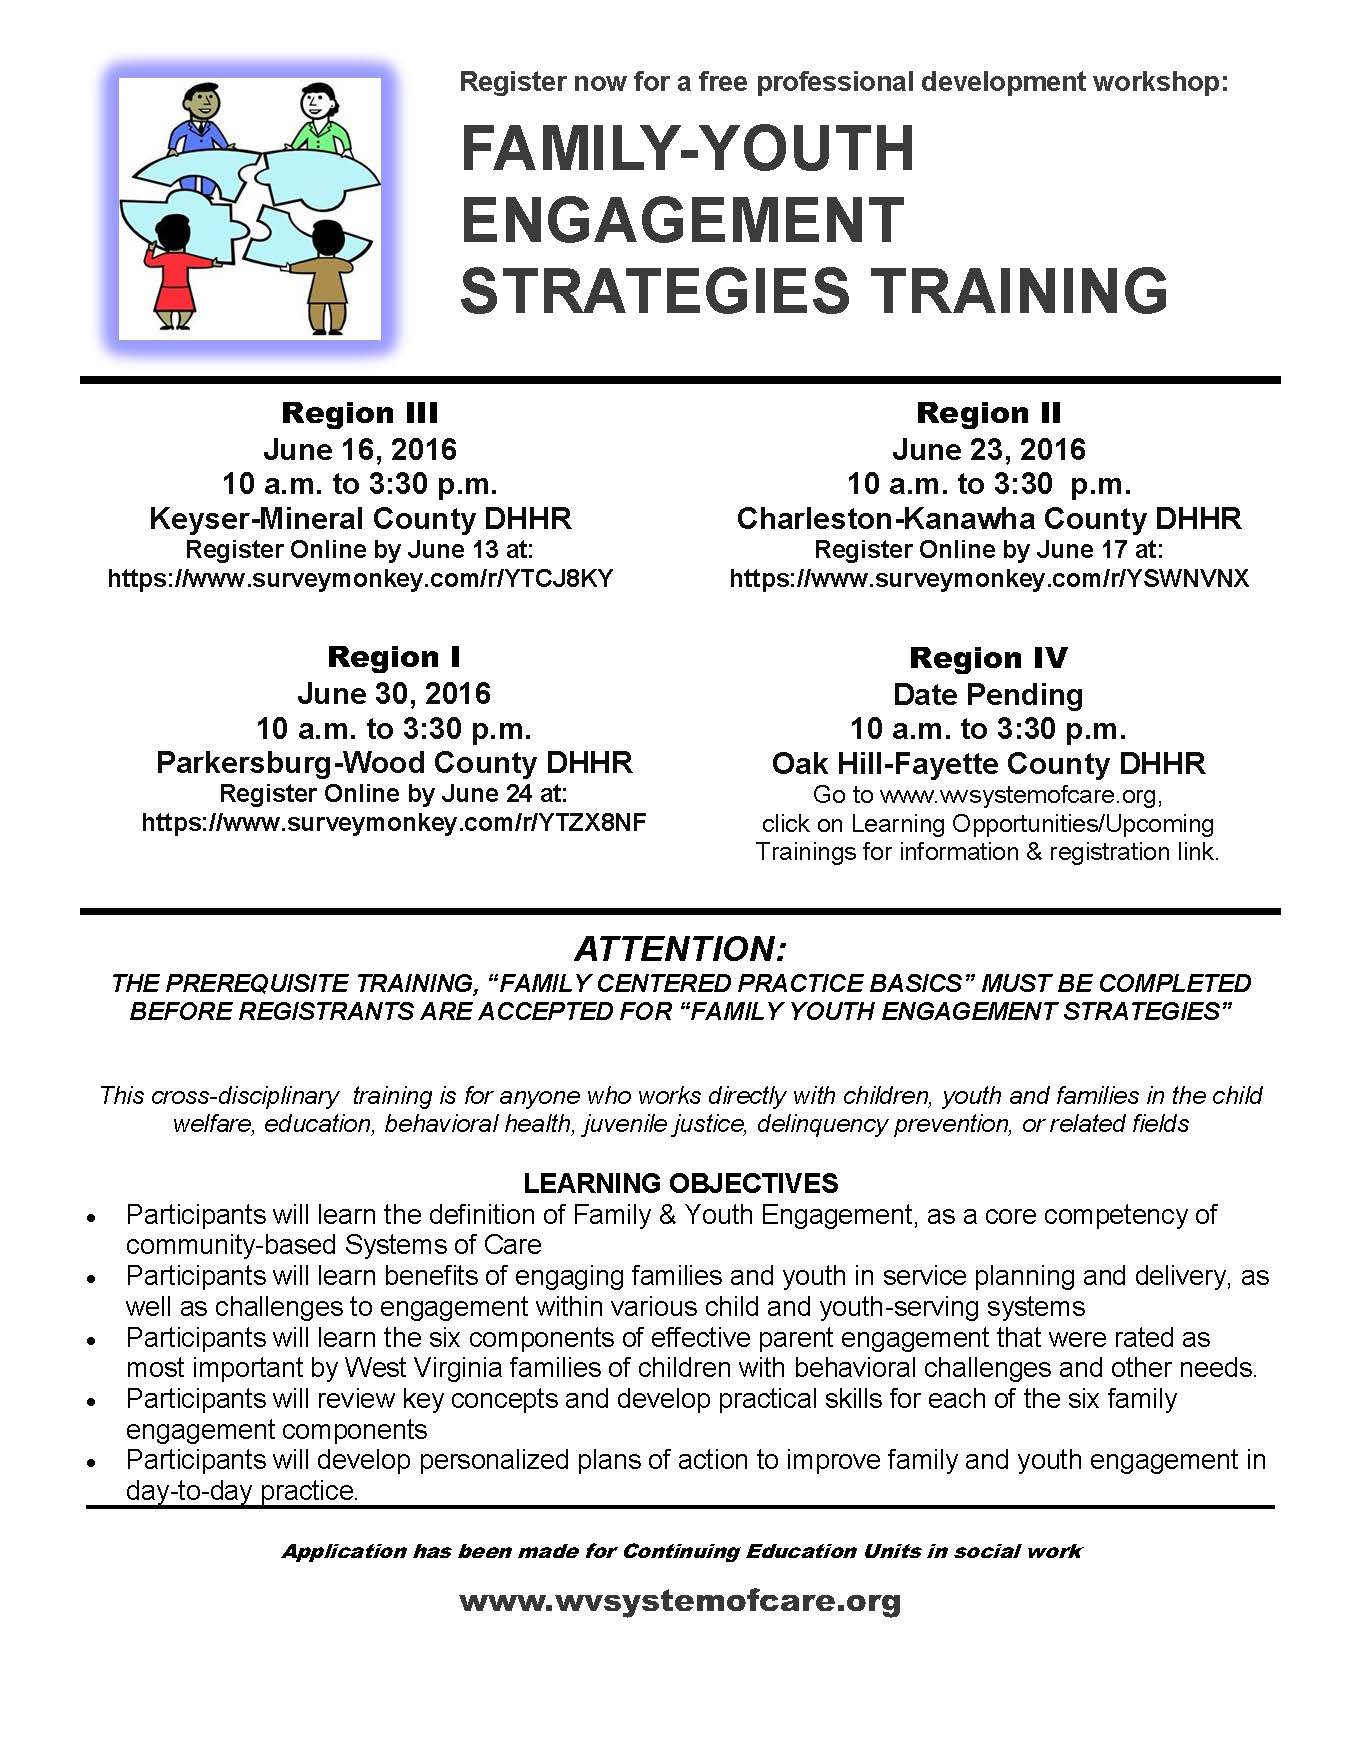 Family Youth Engagement Series Flyer June 3 2016